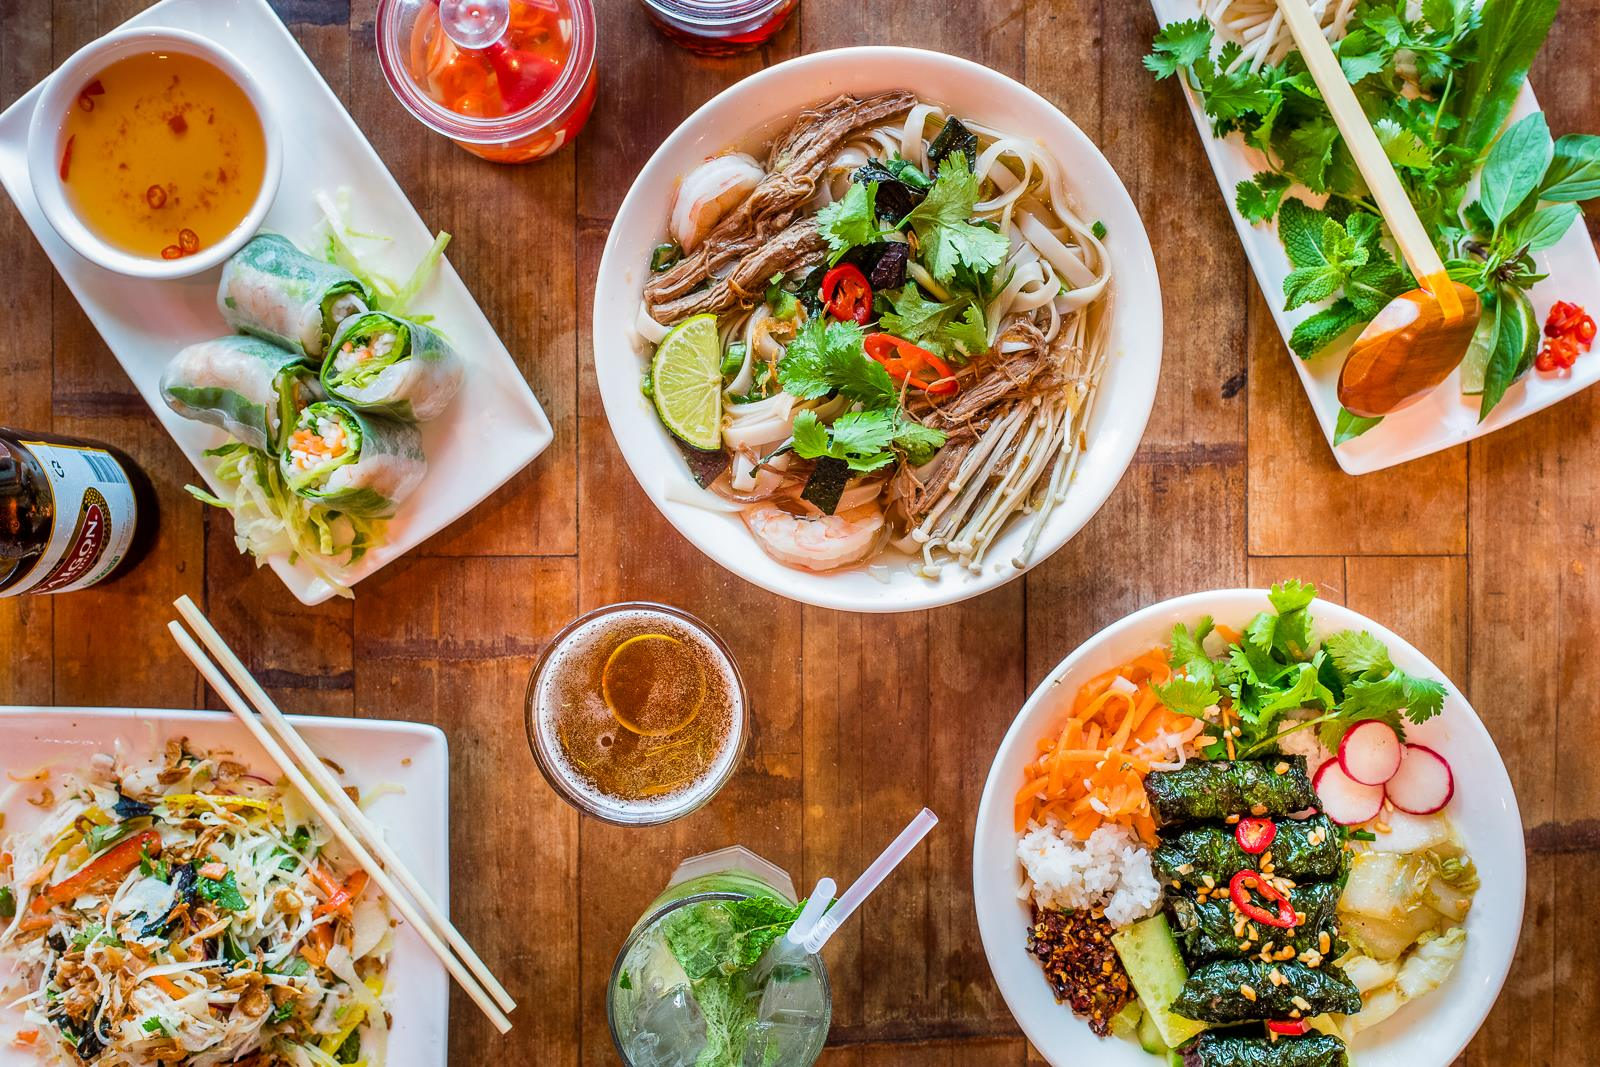 'Free Phó Day' as Vietnamese Restaurant Is Set to Launch at Gunwharf Quays